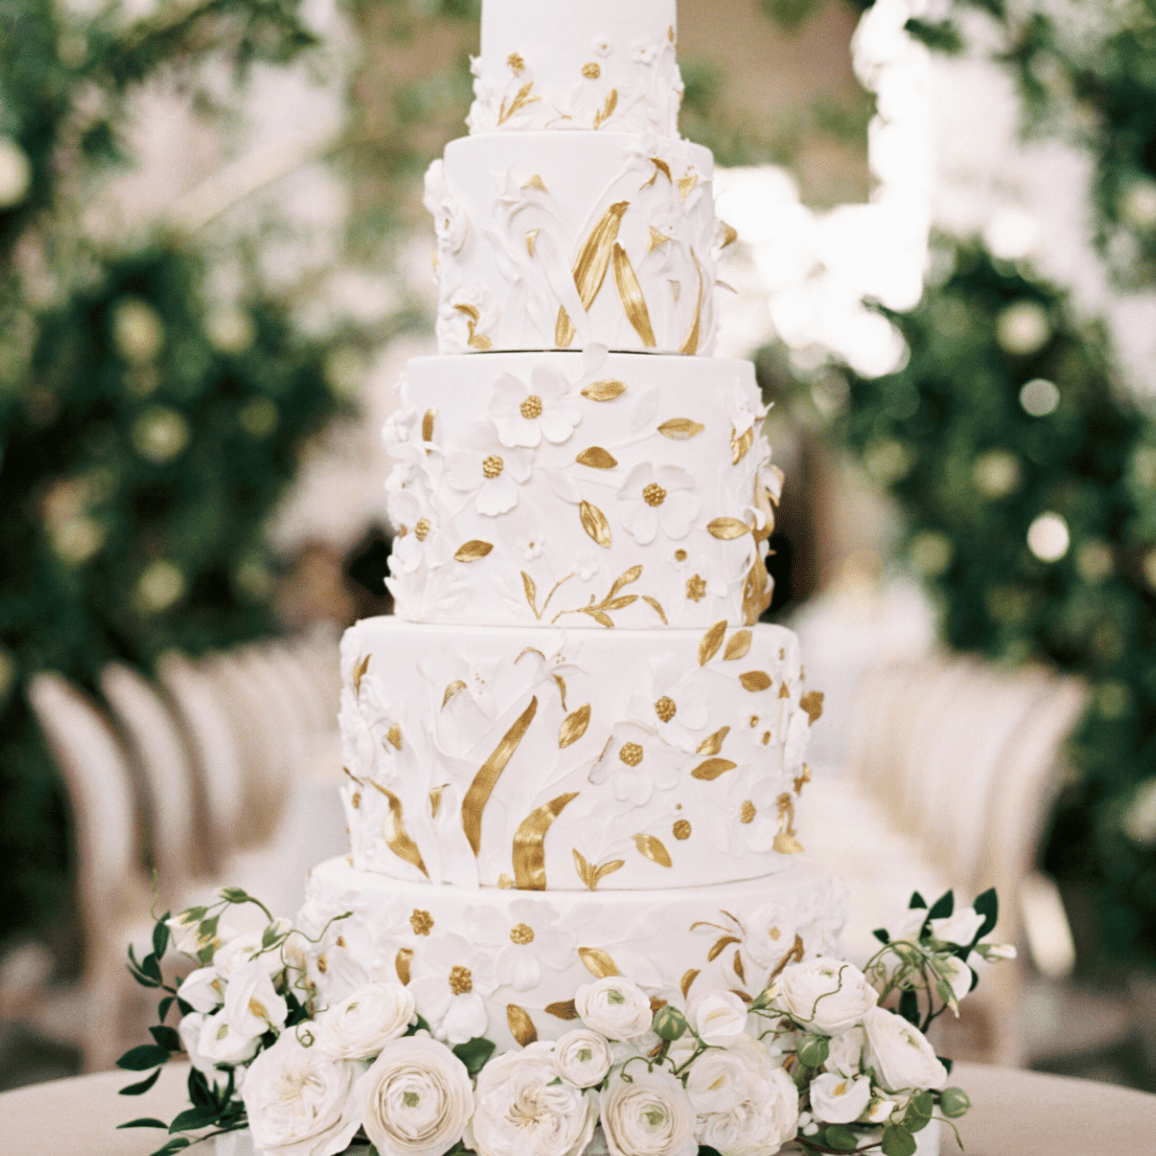 Extravagant cakes most wedding Are these